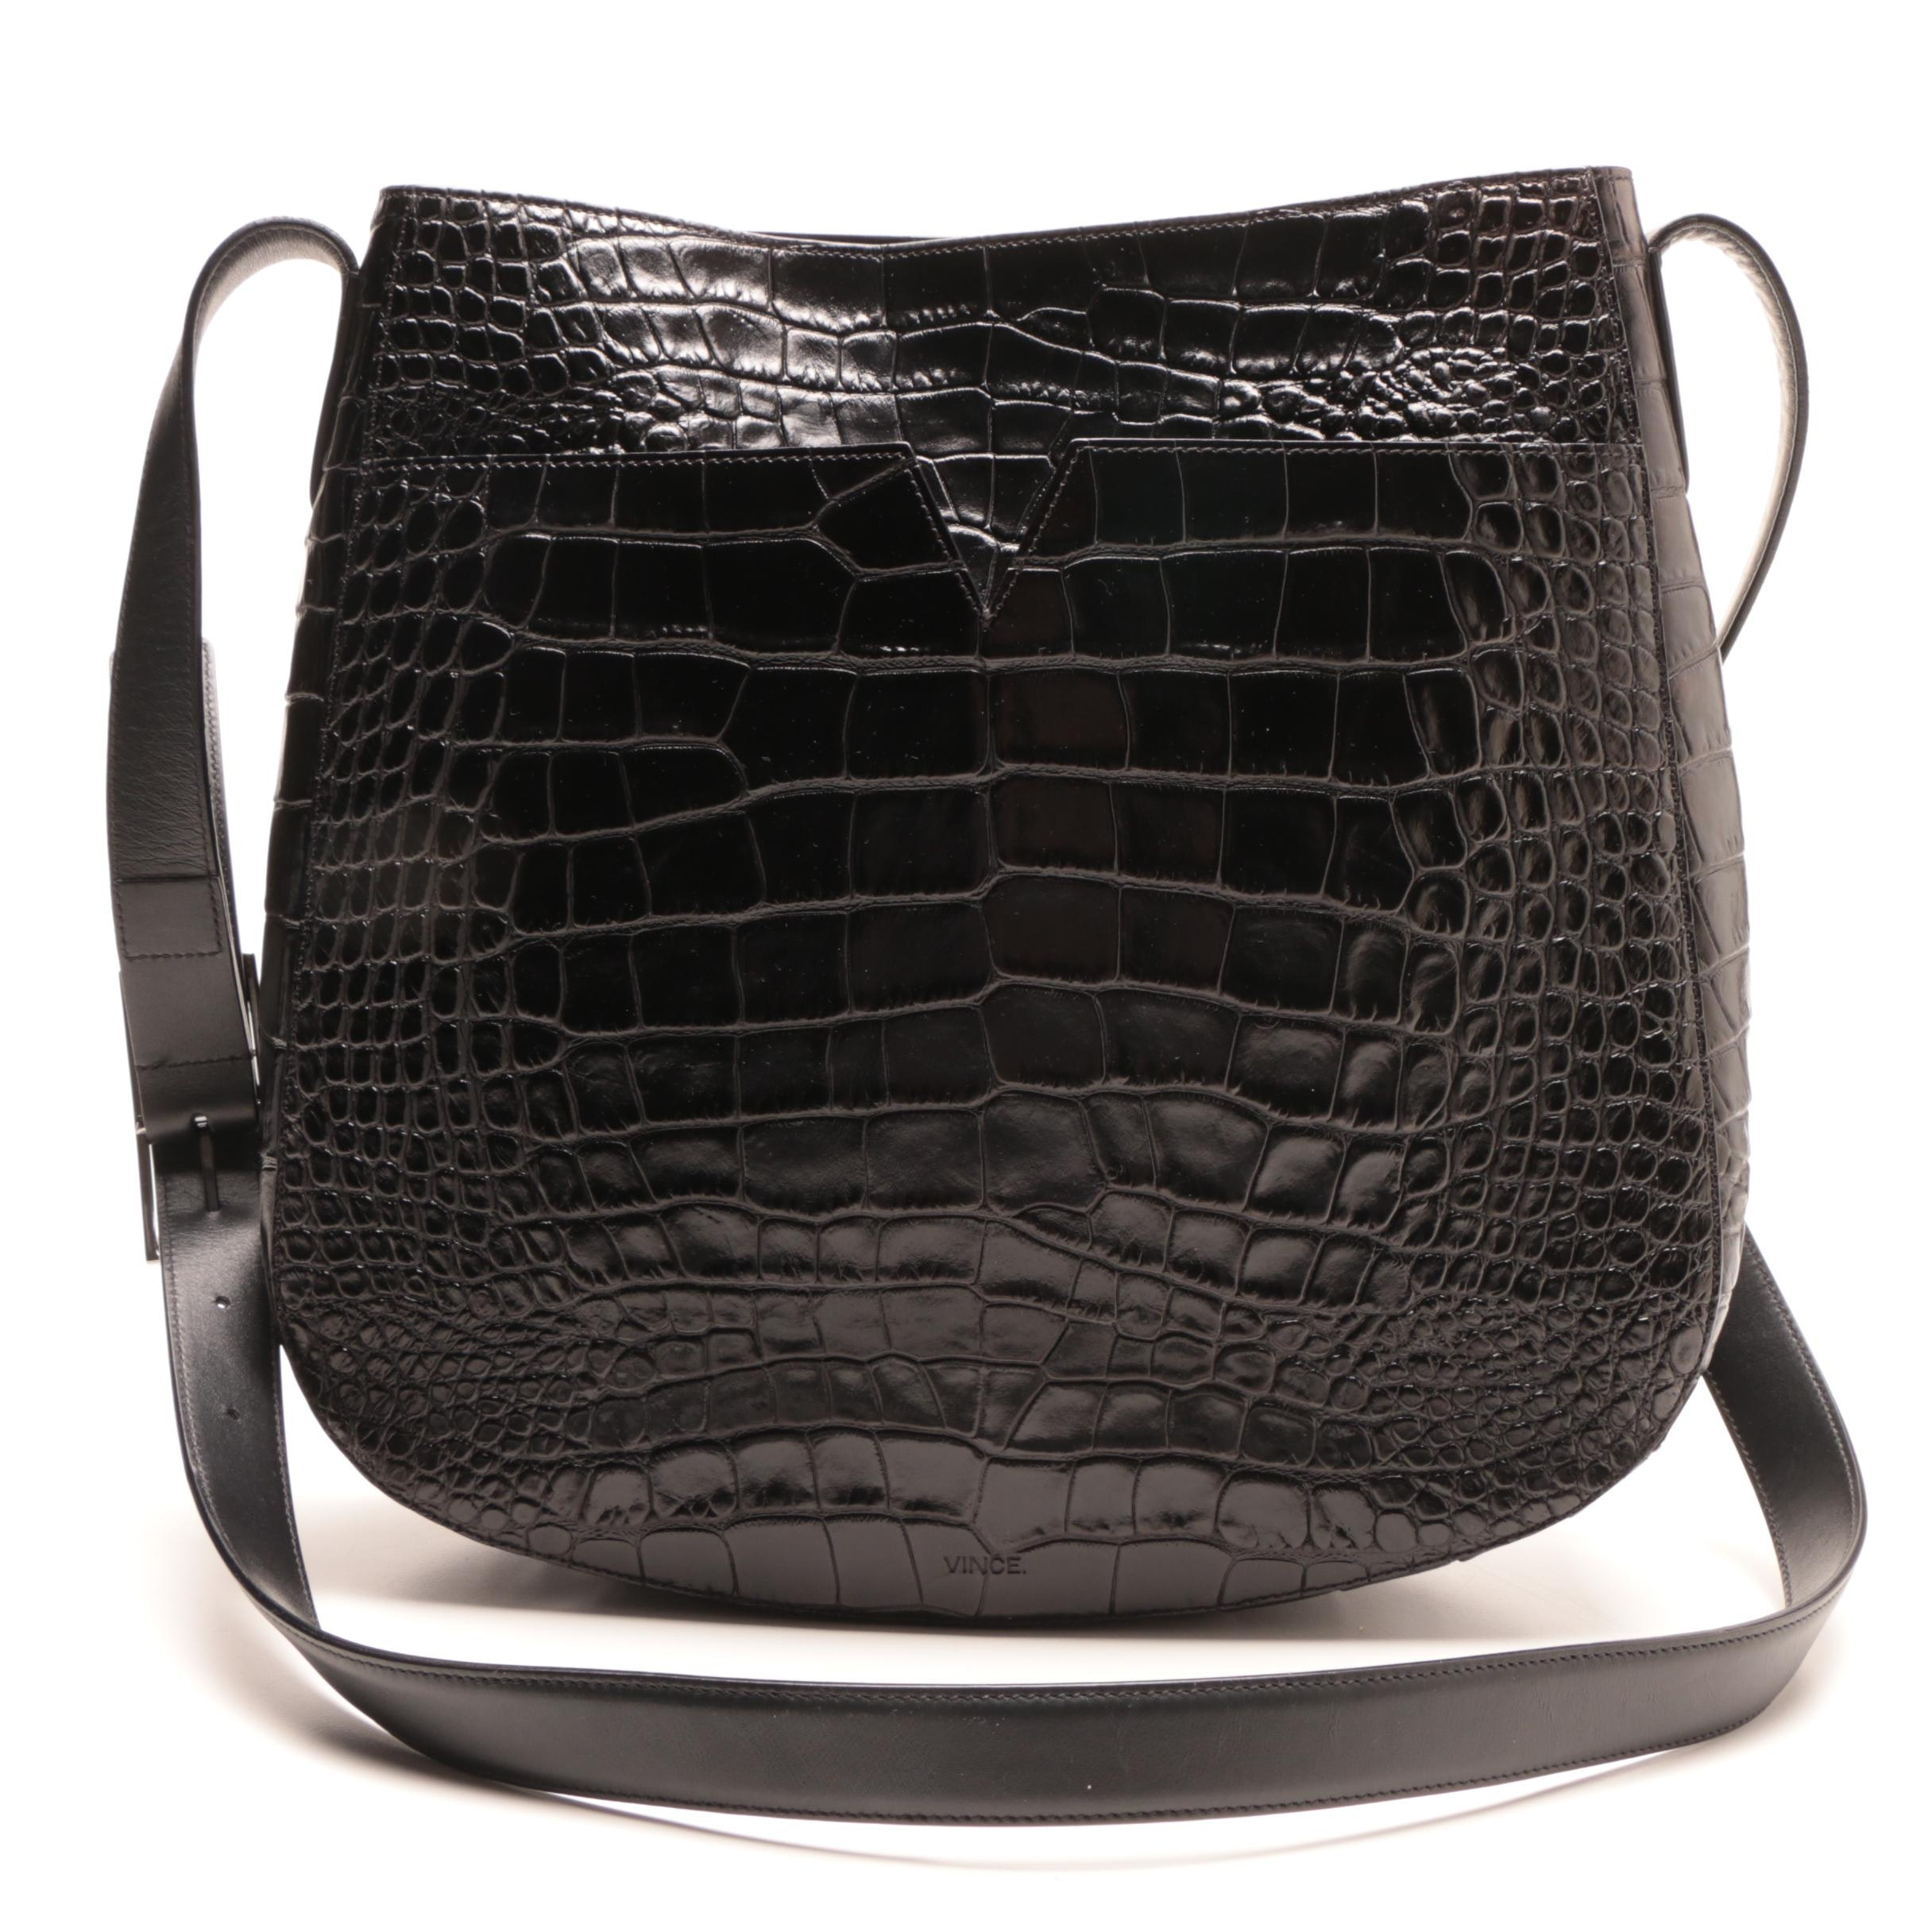 Vince Alligator Embossed Black Leather Shoulder Bag